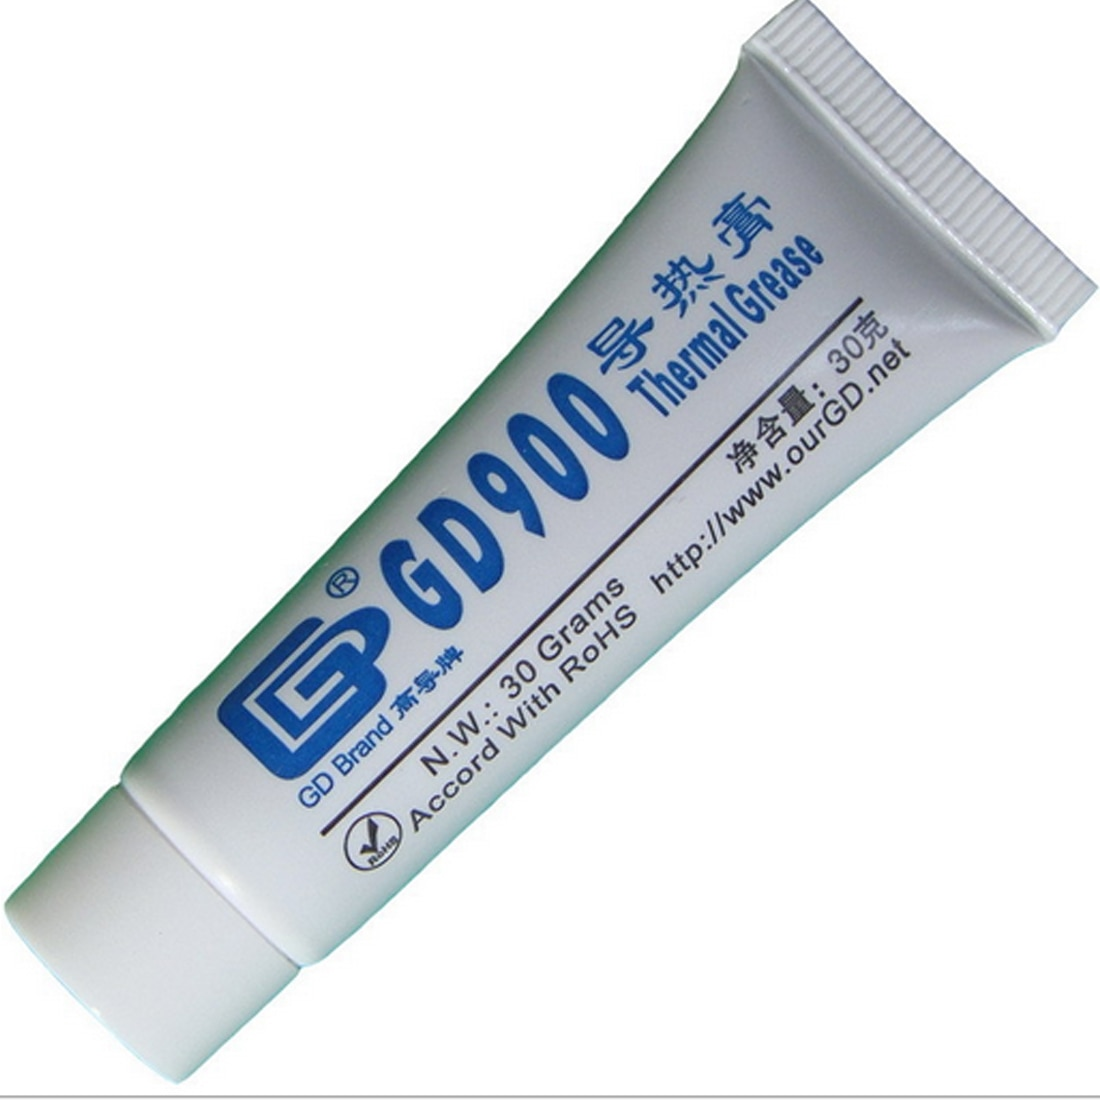 High Performance GD900 Thermal Grease Paste 30g Grey Compound Silicone for Computer Desktop CPU Heat Sink high conductivity gd900 30g processor cpu radiator heat dissipation silicone paste plaster heat dissipation paste needle tube sy